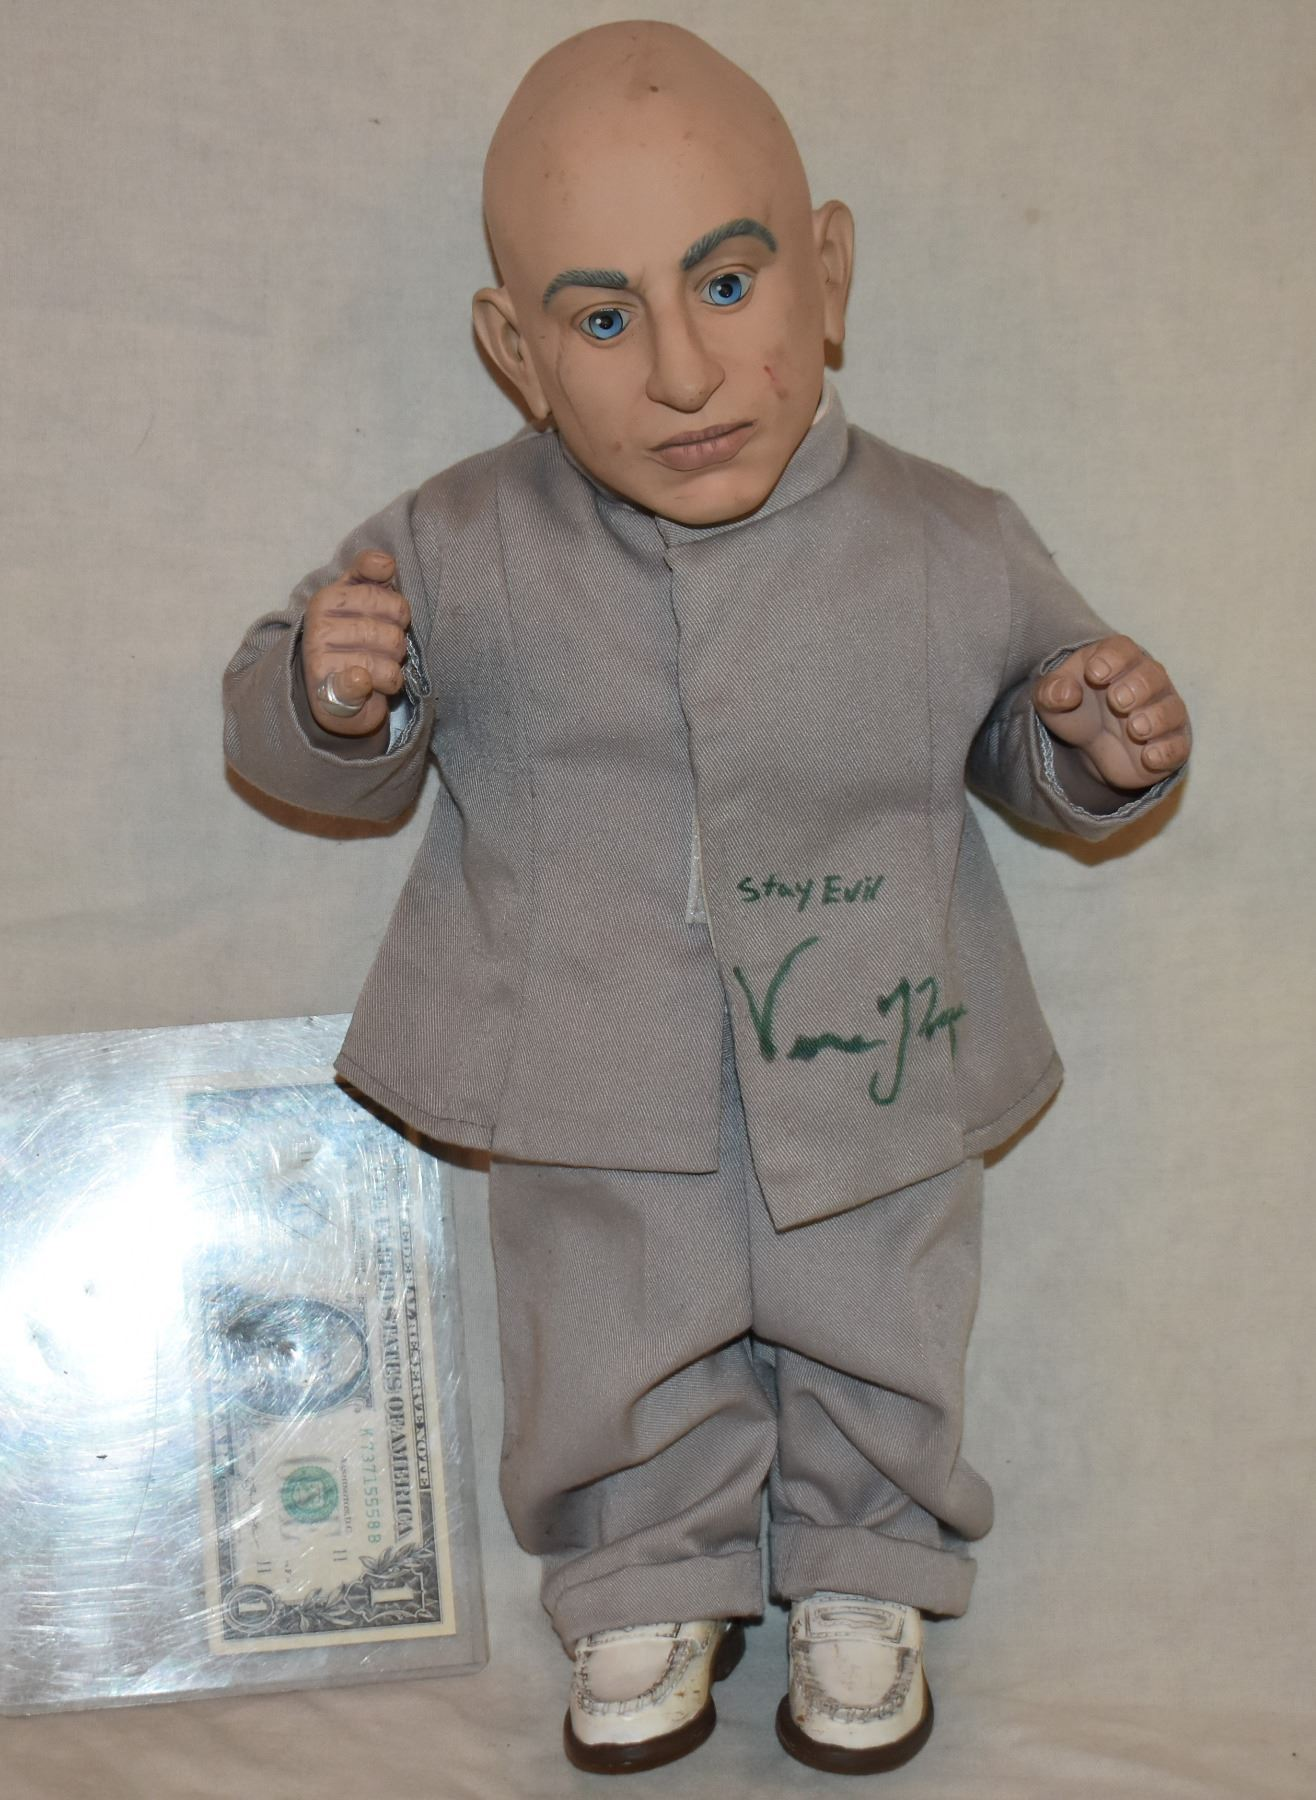 75bce9b2935b Image 1 : AUSTIN POWERS MINI ME TALKING DOLL HAND SIGNED BY VERNE TROYER ...